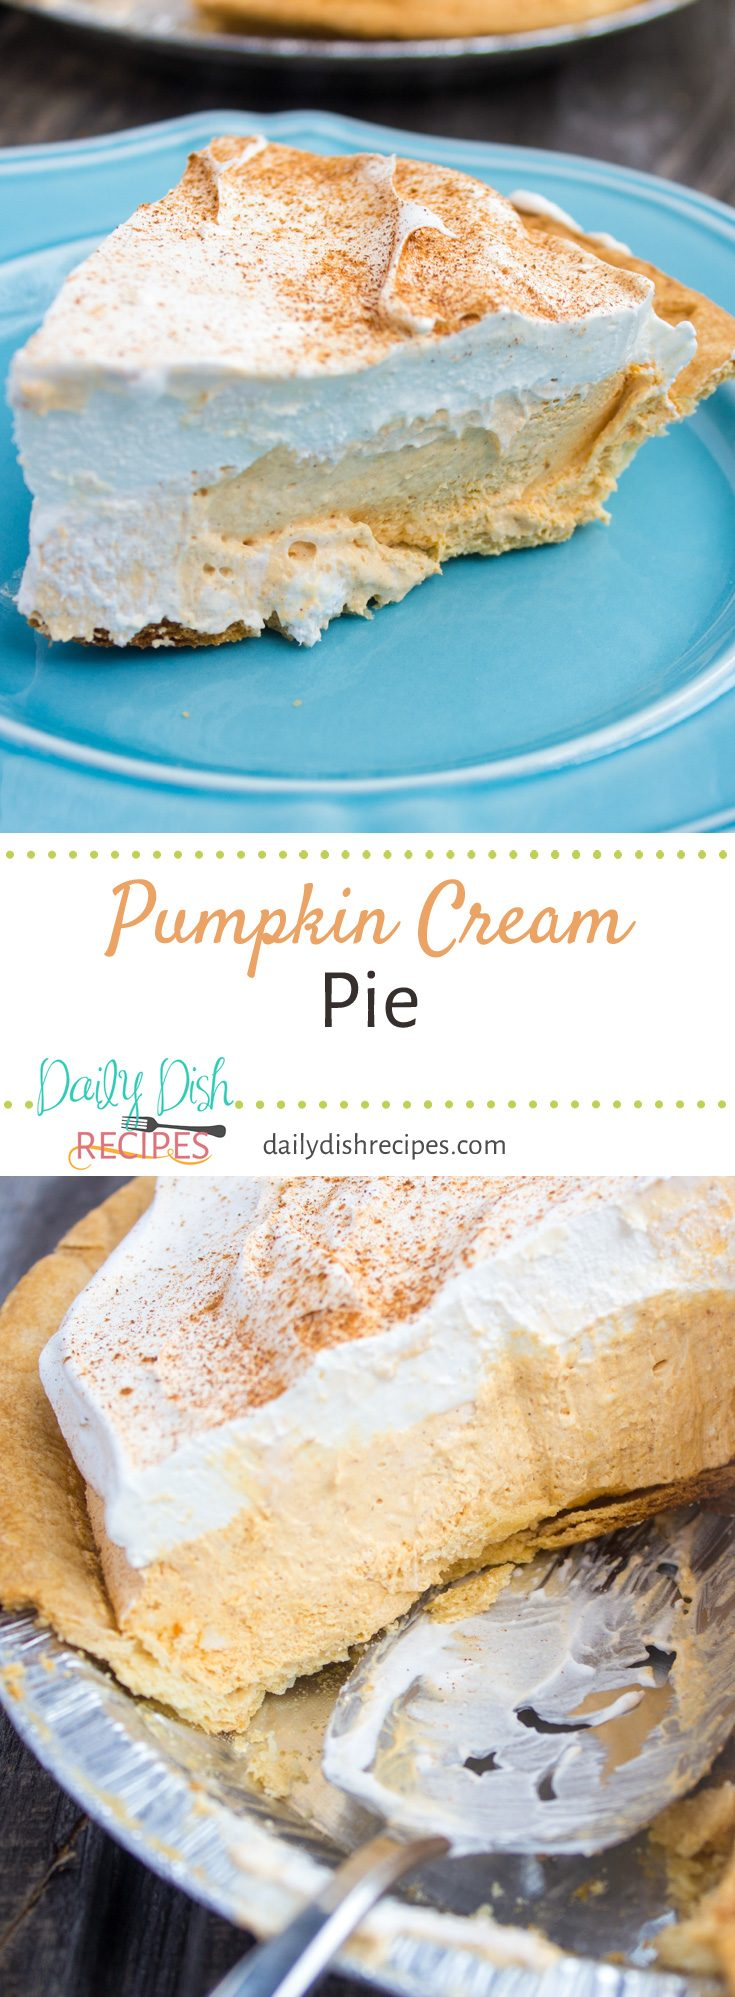 Creamy Pumpkin goodness in every single slice of this decadent Pumpkin Cream Pie. Our favorite Fall pie! So much Pumpkin flavor and SO delicious!